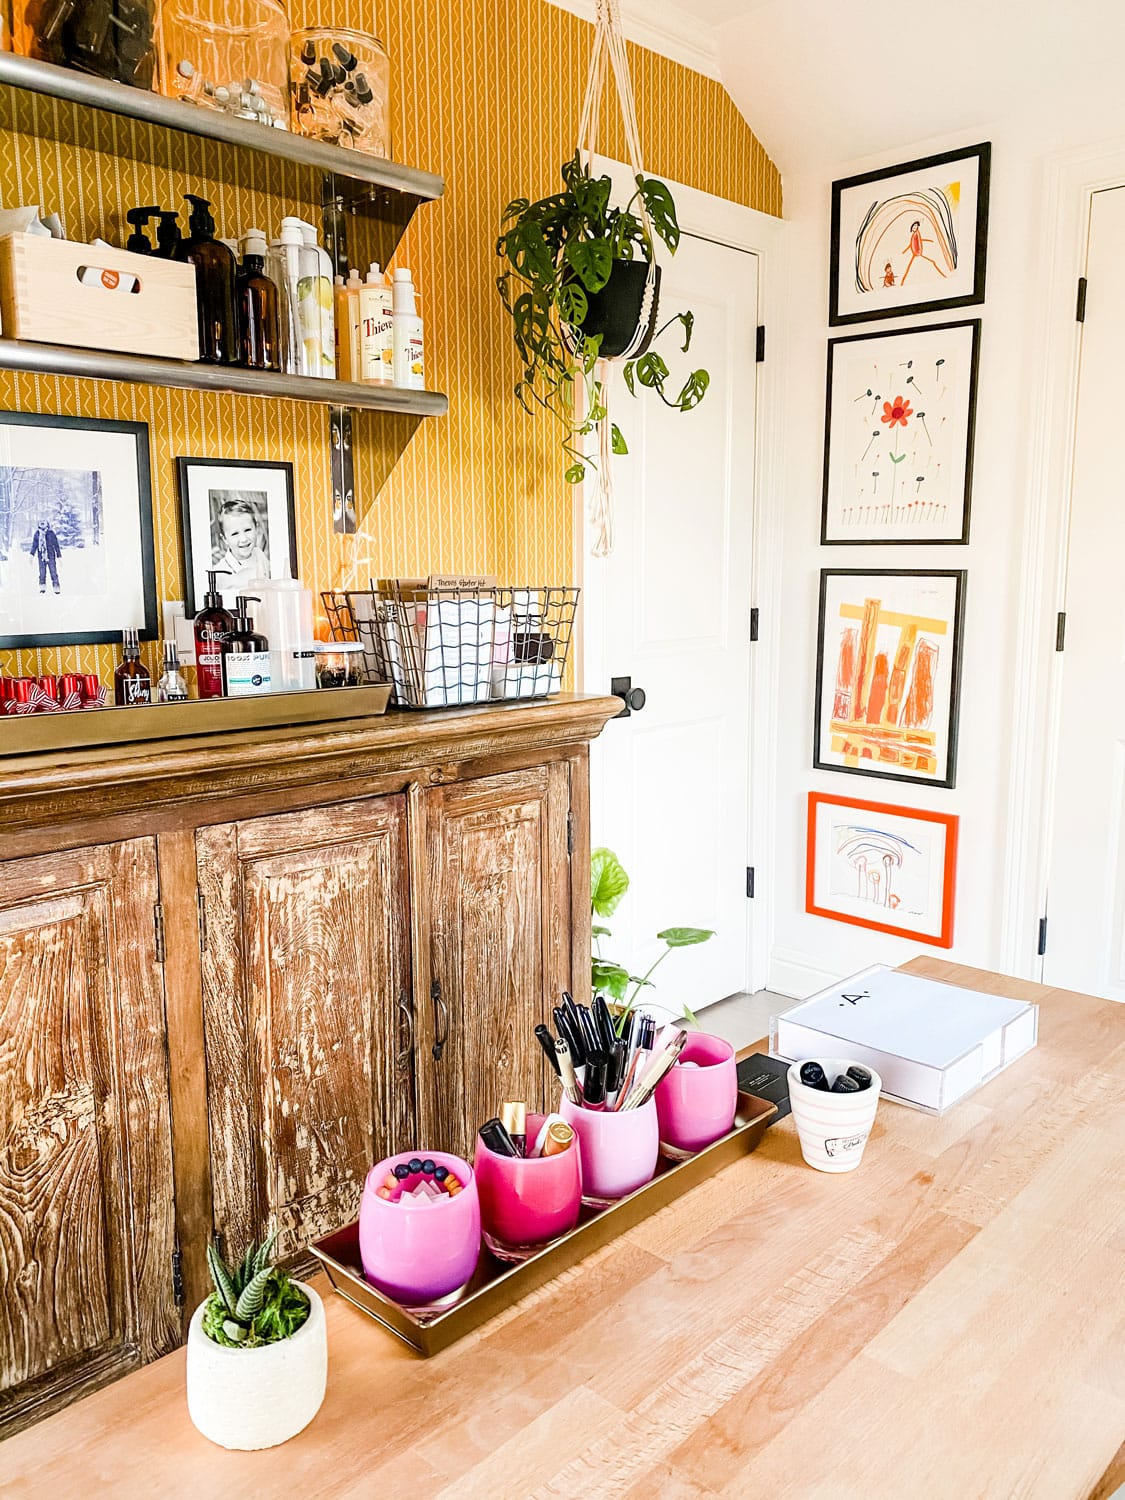 desk accessories and kids art on wall